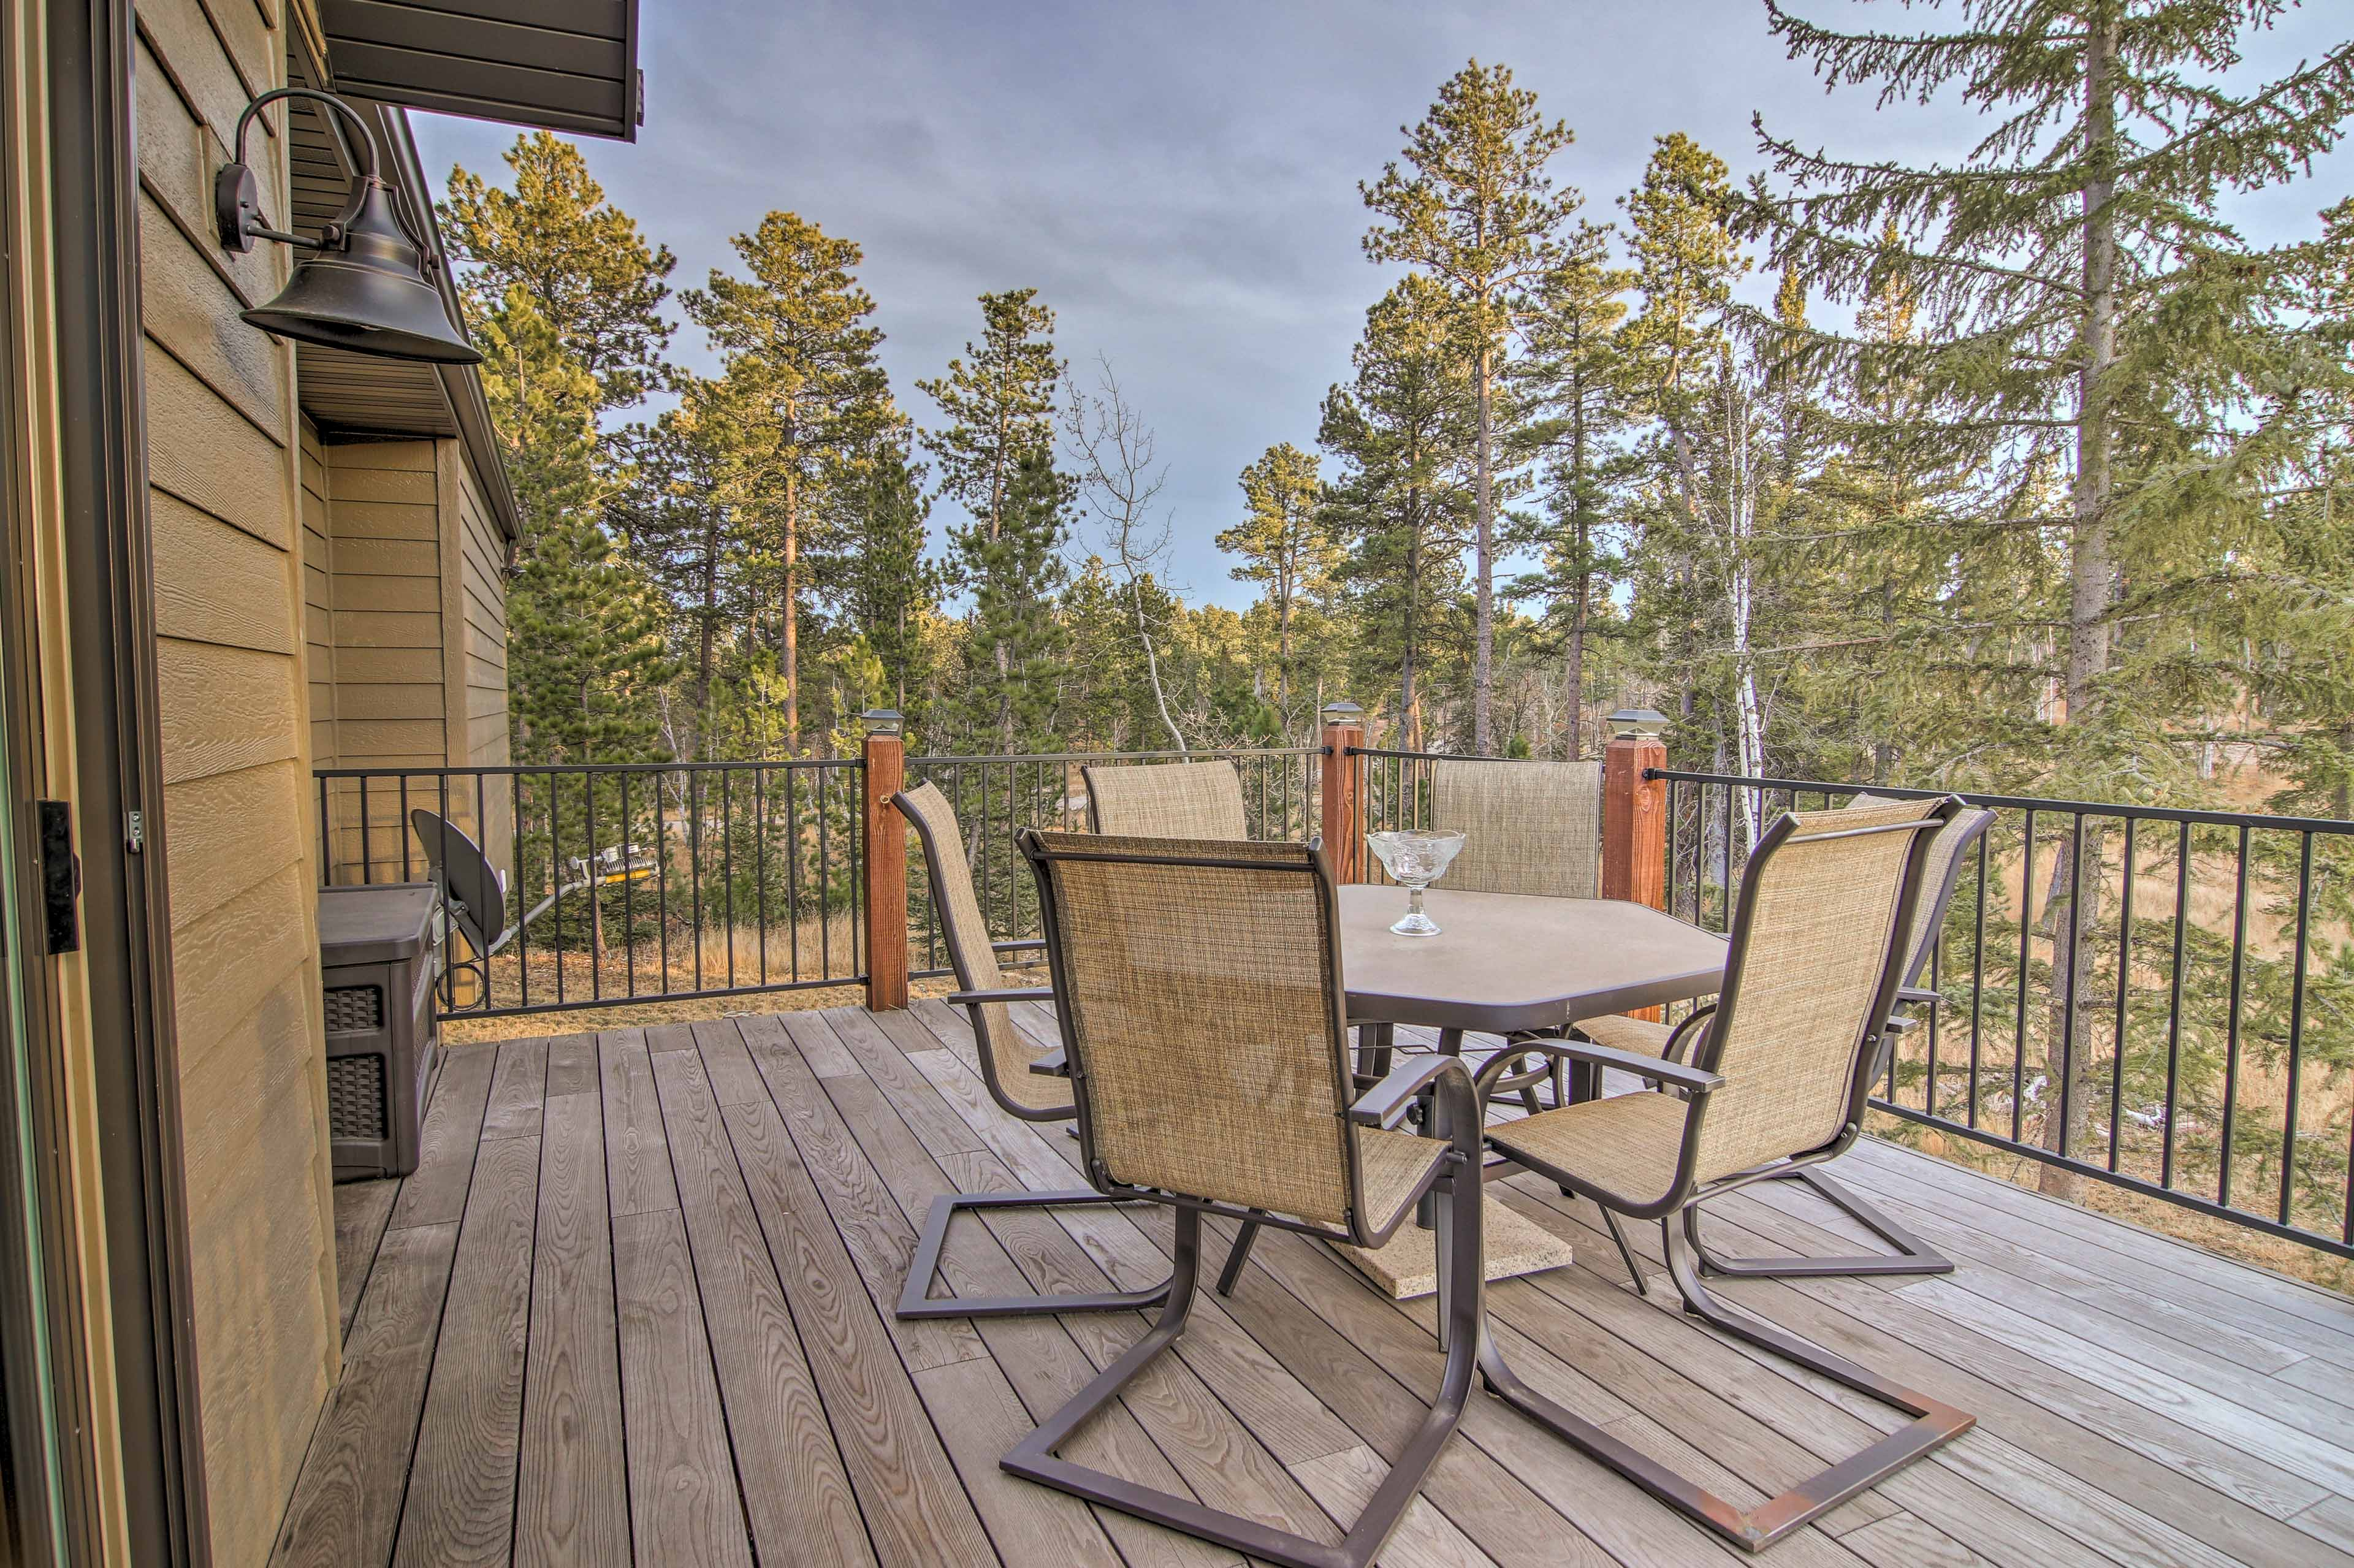 Nestled away under towering pines, this home feels secluded, yet only minutes from town!